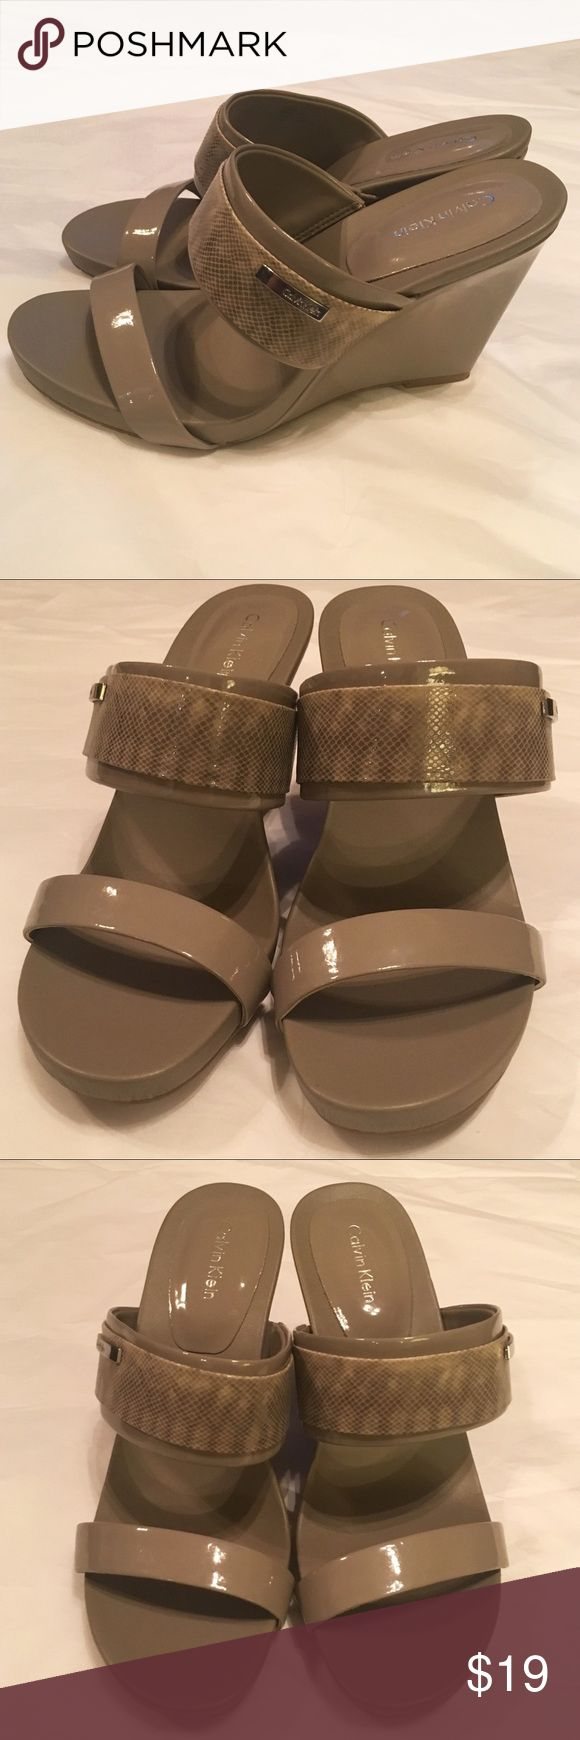 """Calvin Klein """"Omira"""" Patent Leather Wedges """"Beige"""" Neutral wedges that go with just about everything! There is a black scuff mark with some white around it that can be seen in pic. The shoes have elastic on the second straps. I don't believe it's stretched out at all but it can be seen it pics. It has a edgy python emboss and heel height is approx. 4in. The rubber outsole offers some extra traction and long wear. Calvin Klein Shoes Wedges"""